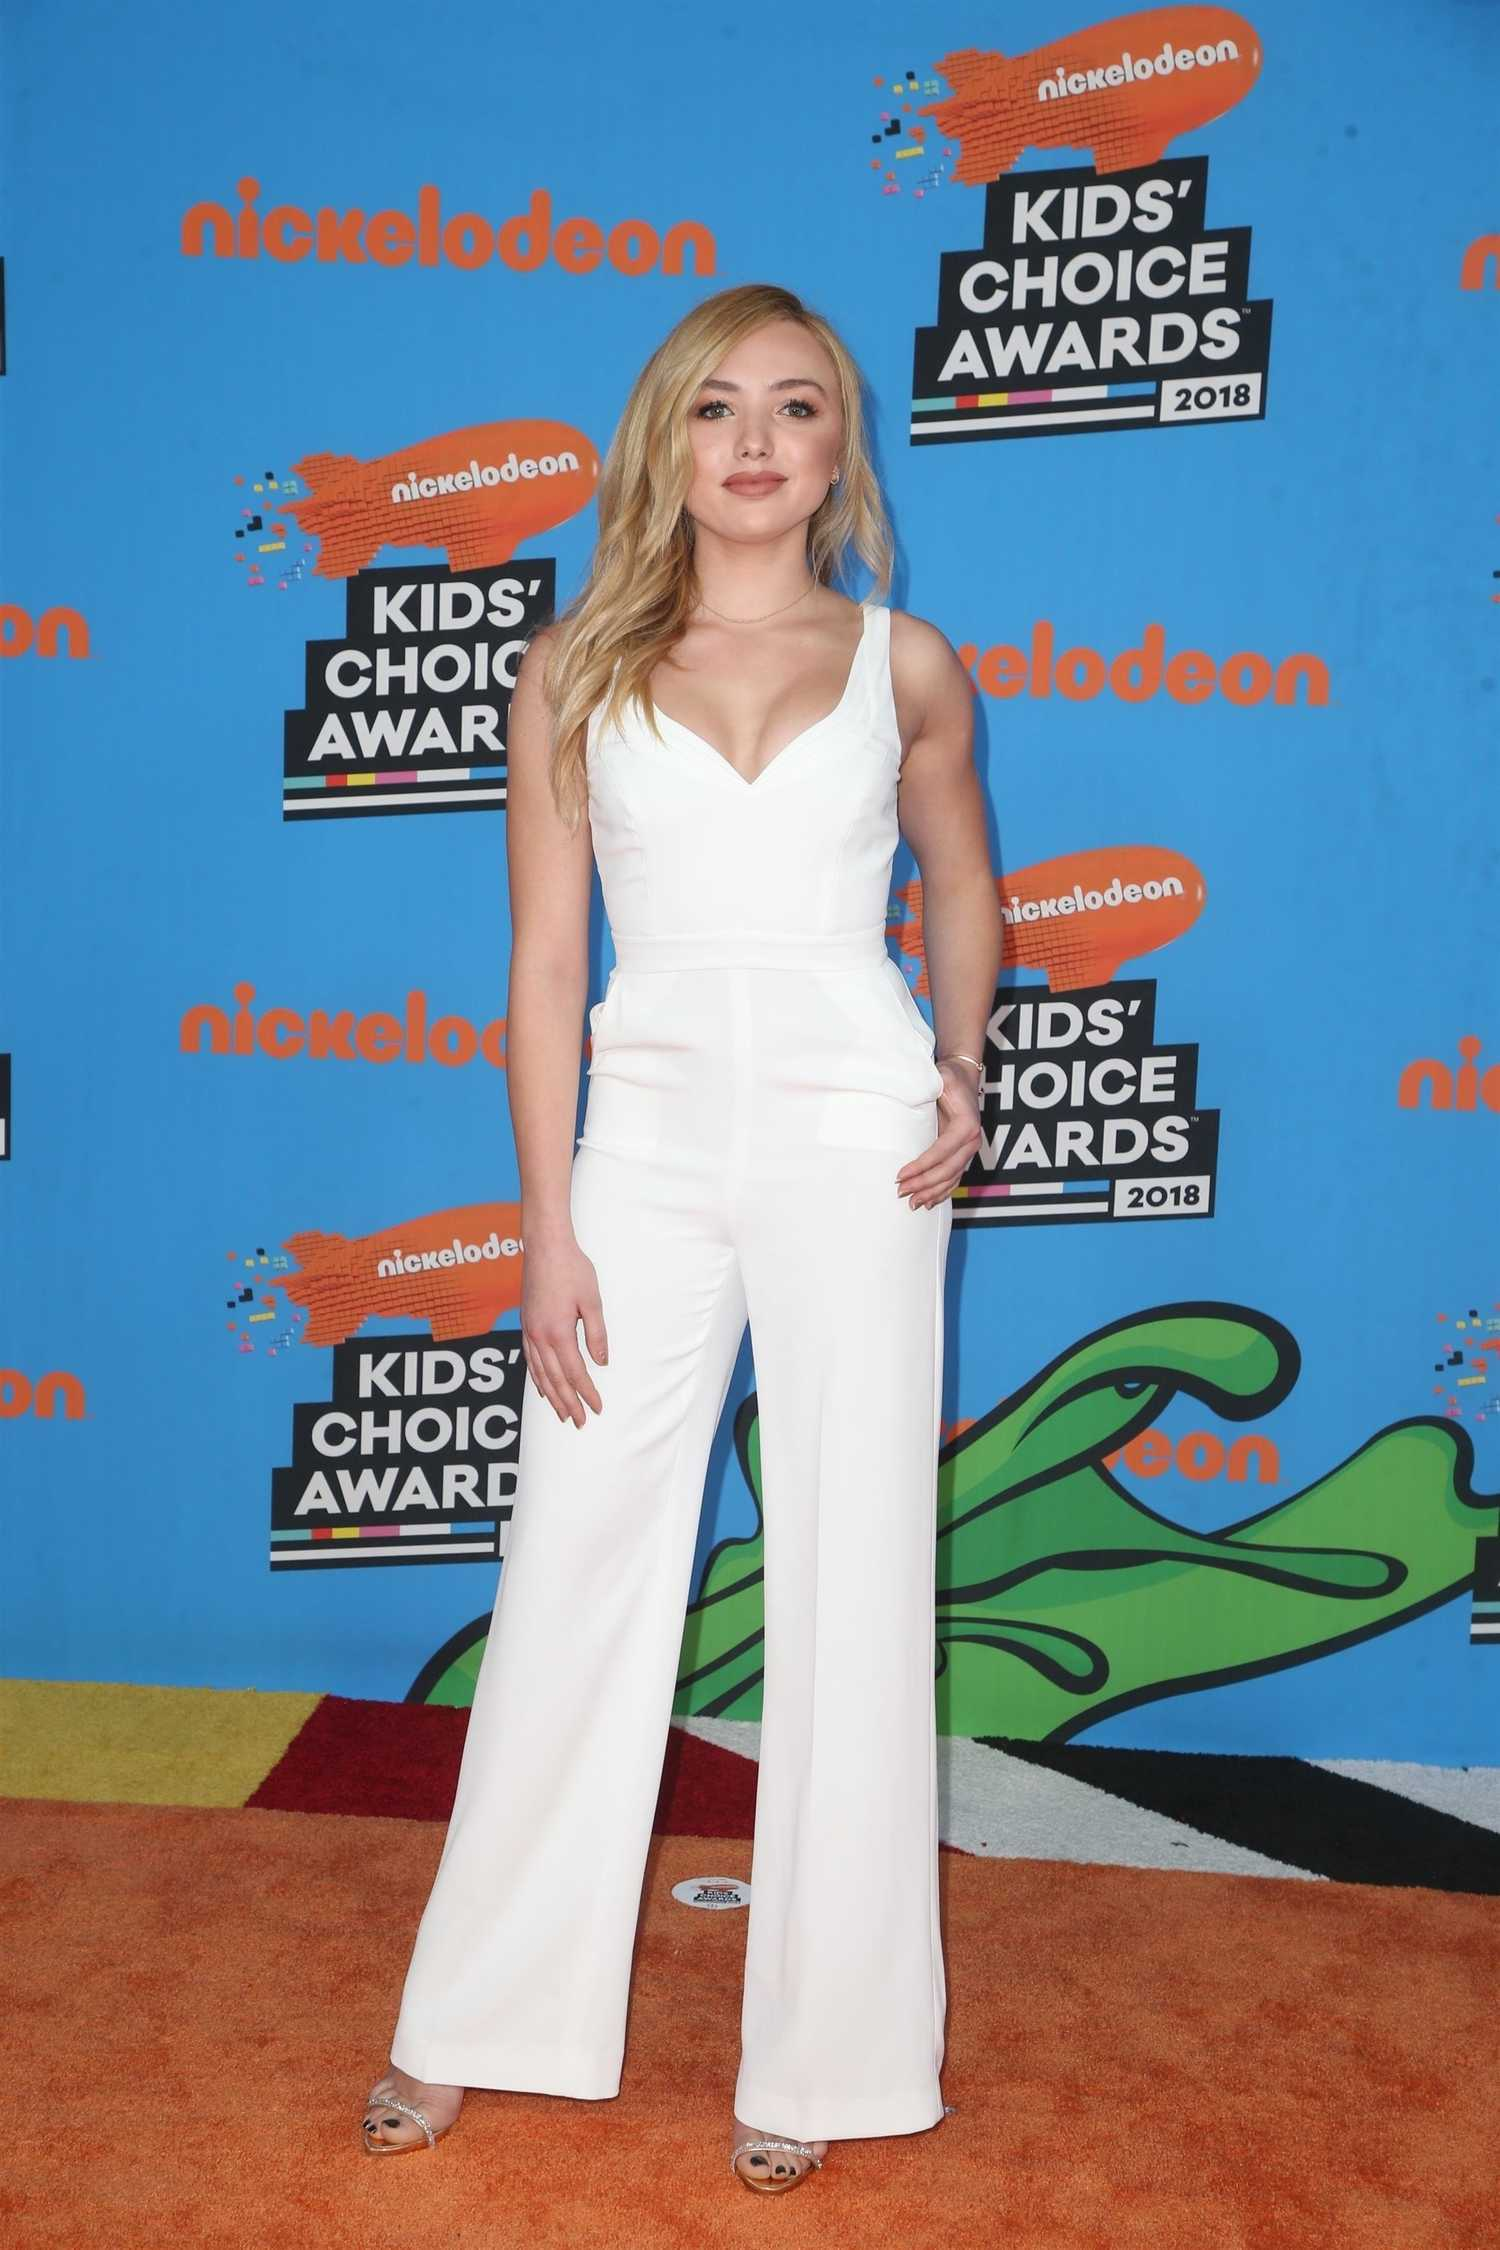 Kids choice awards 2018